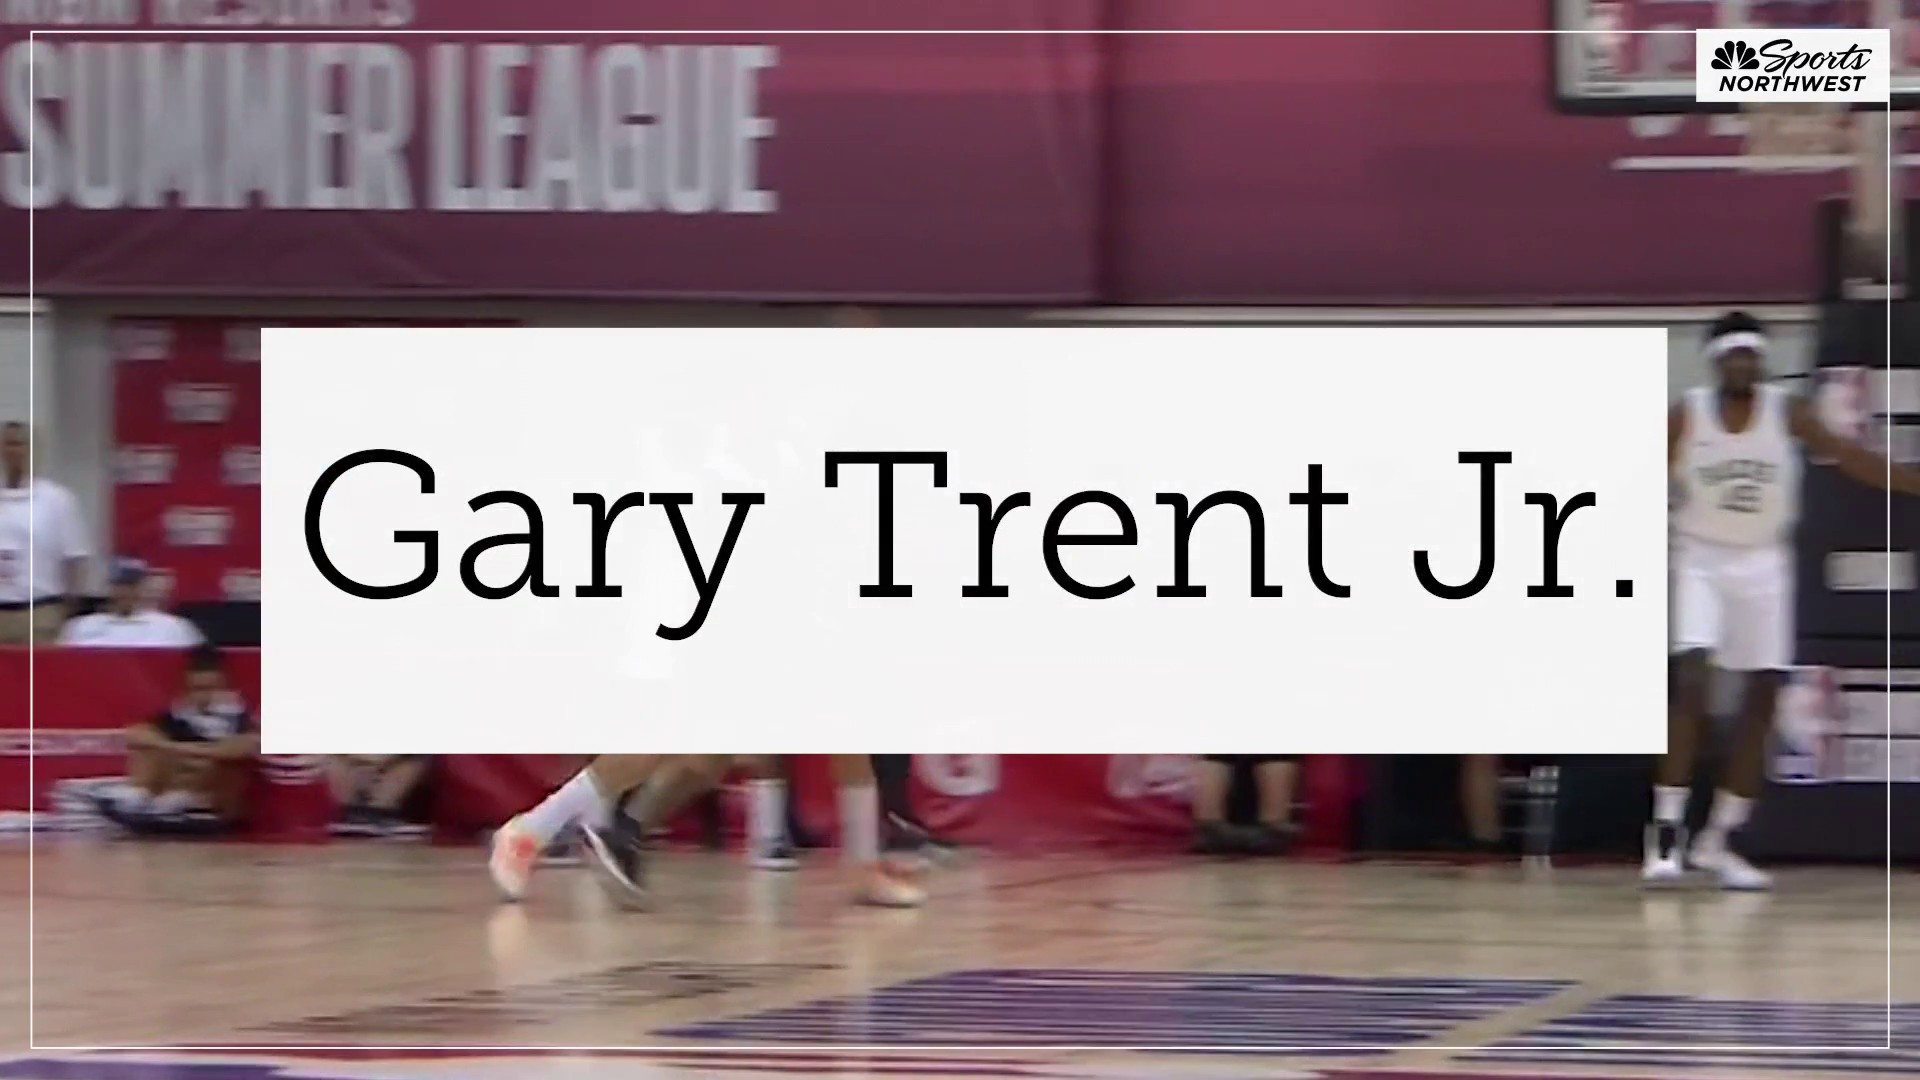 Coach Moran: For Gary Trent Jr., it's time to D Up